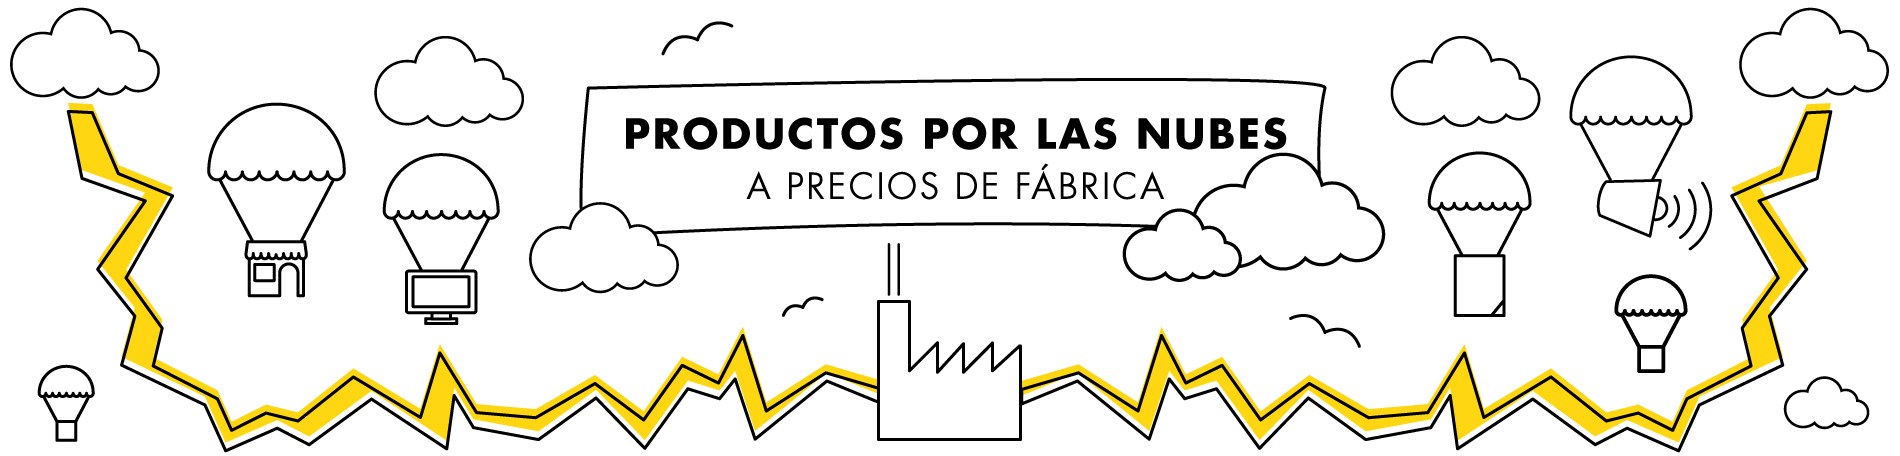 01_productos_nubes_SLIDE